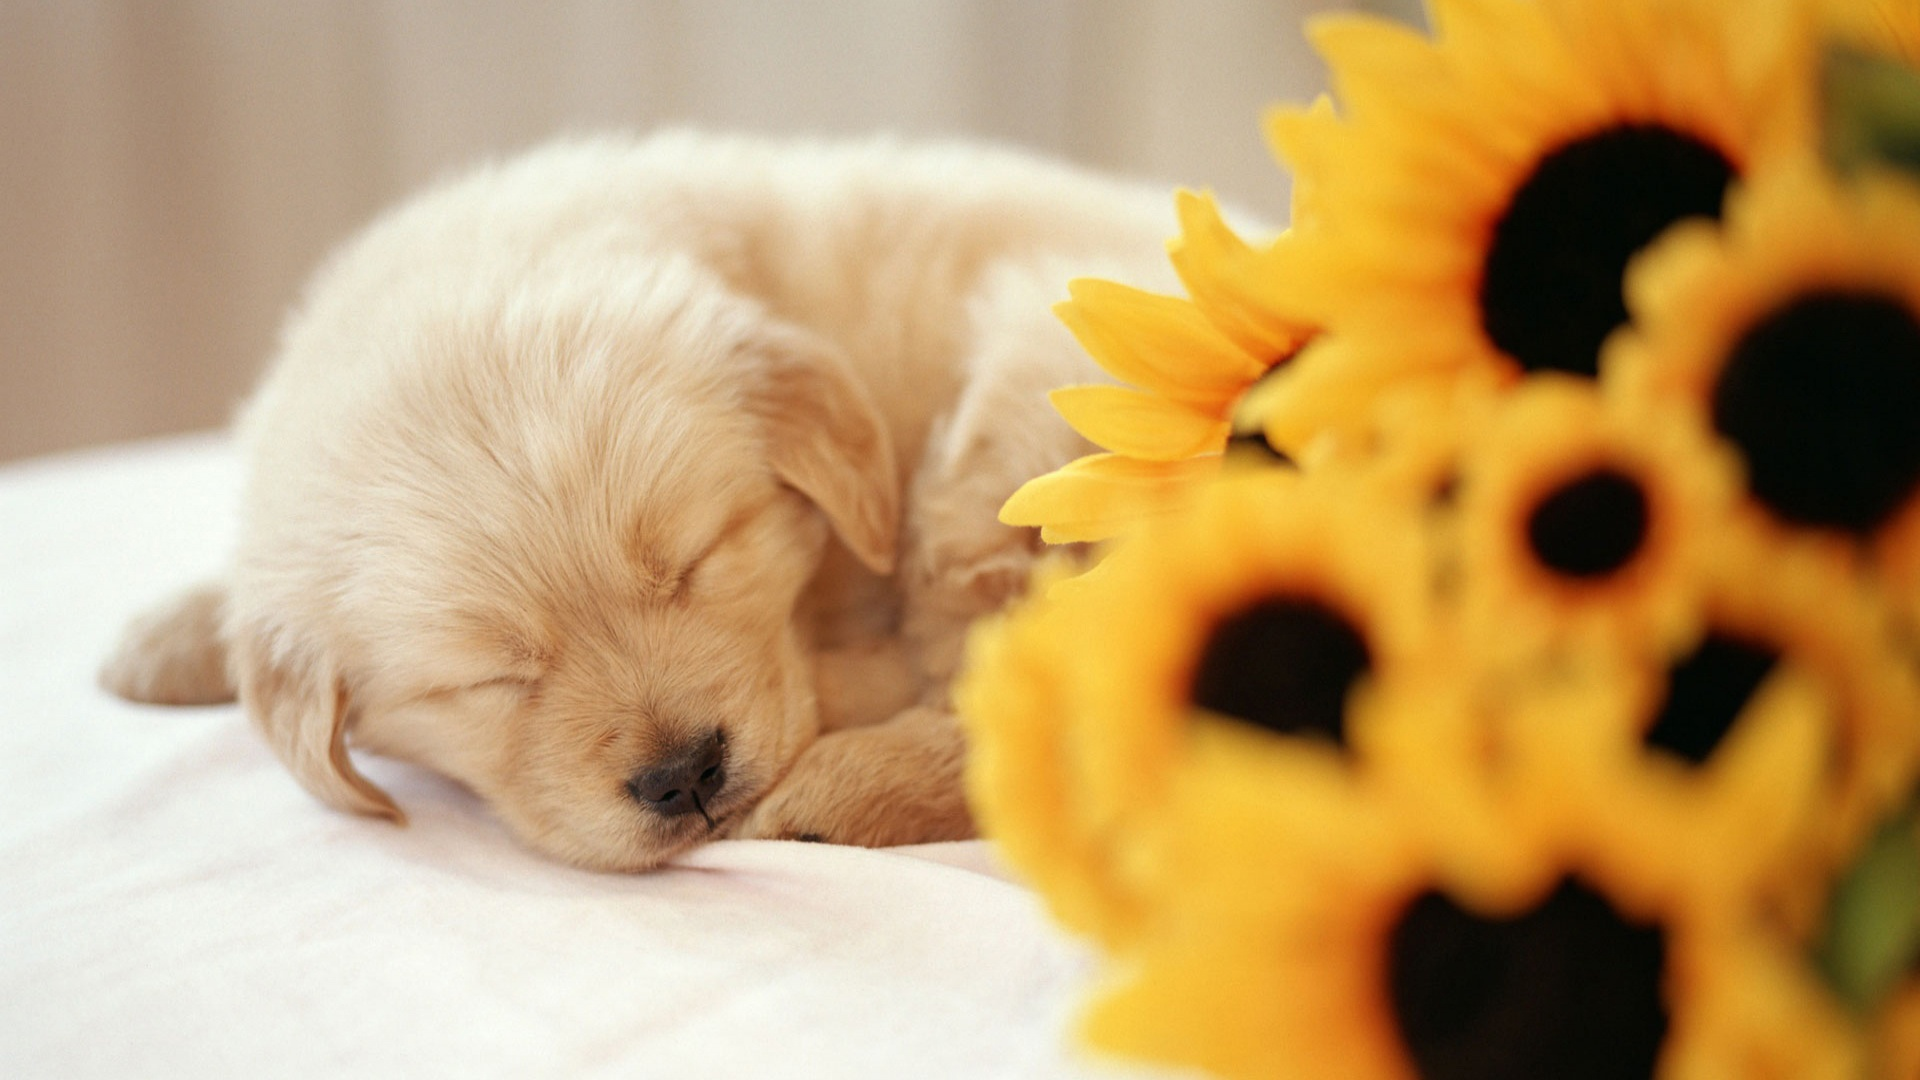 Spring Desktop Backgrounds with Puppies   HD Wallpapers 1920x1080